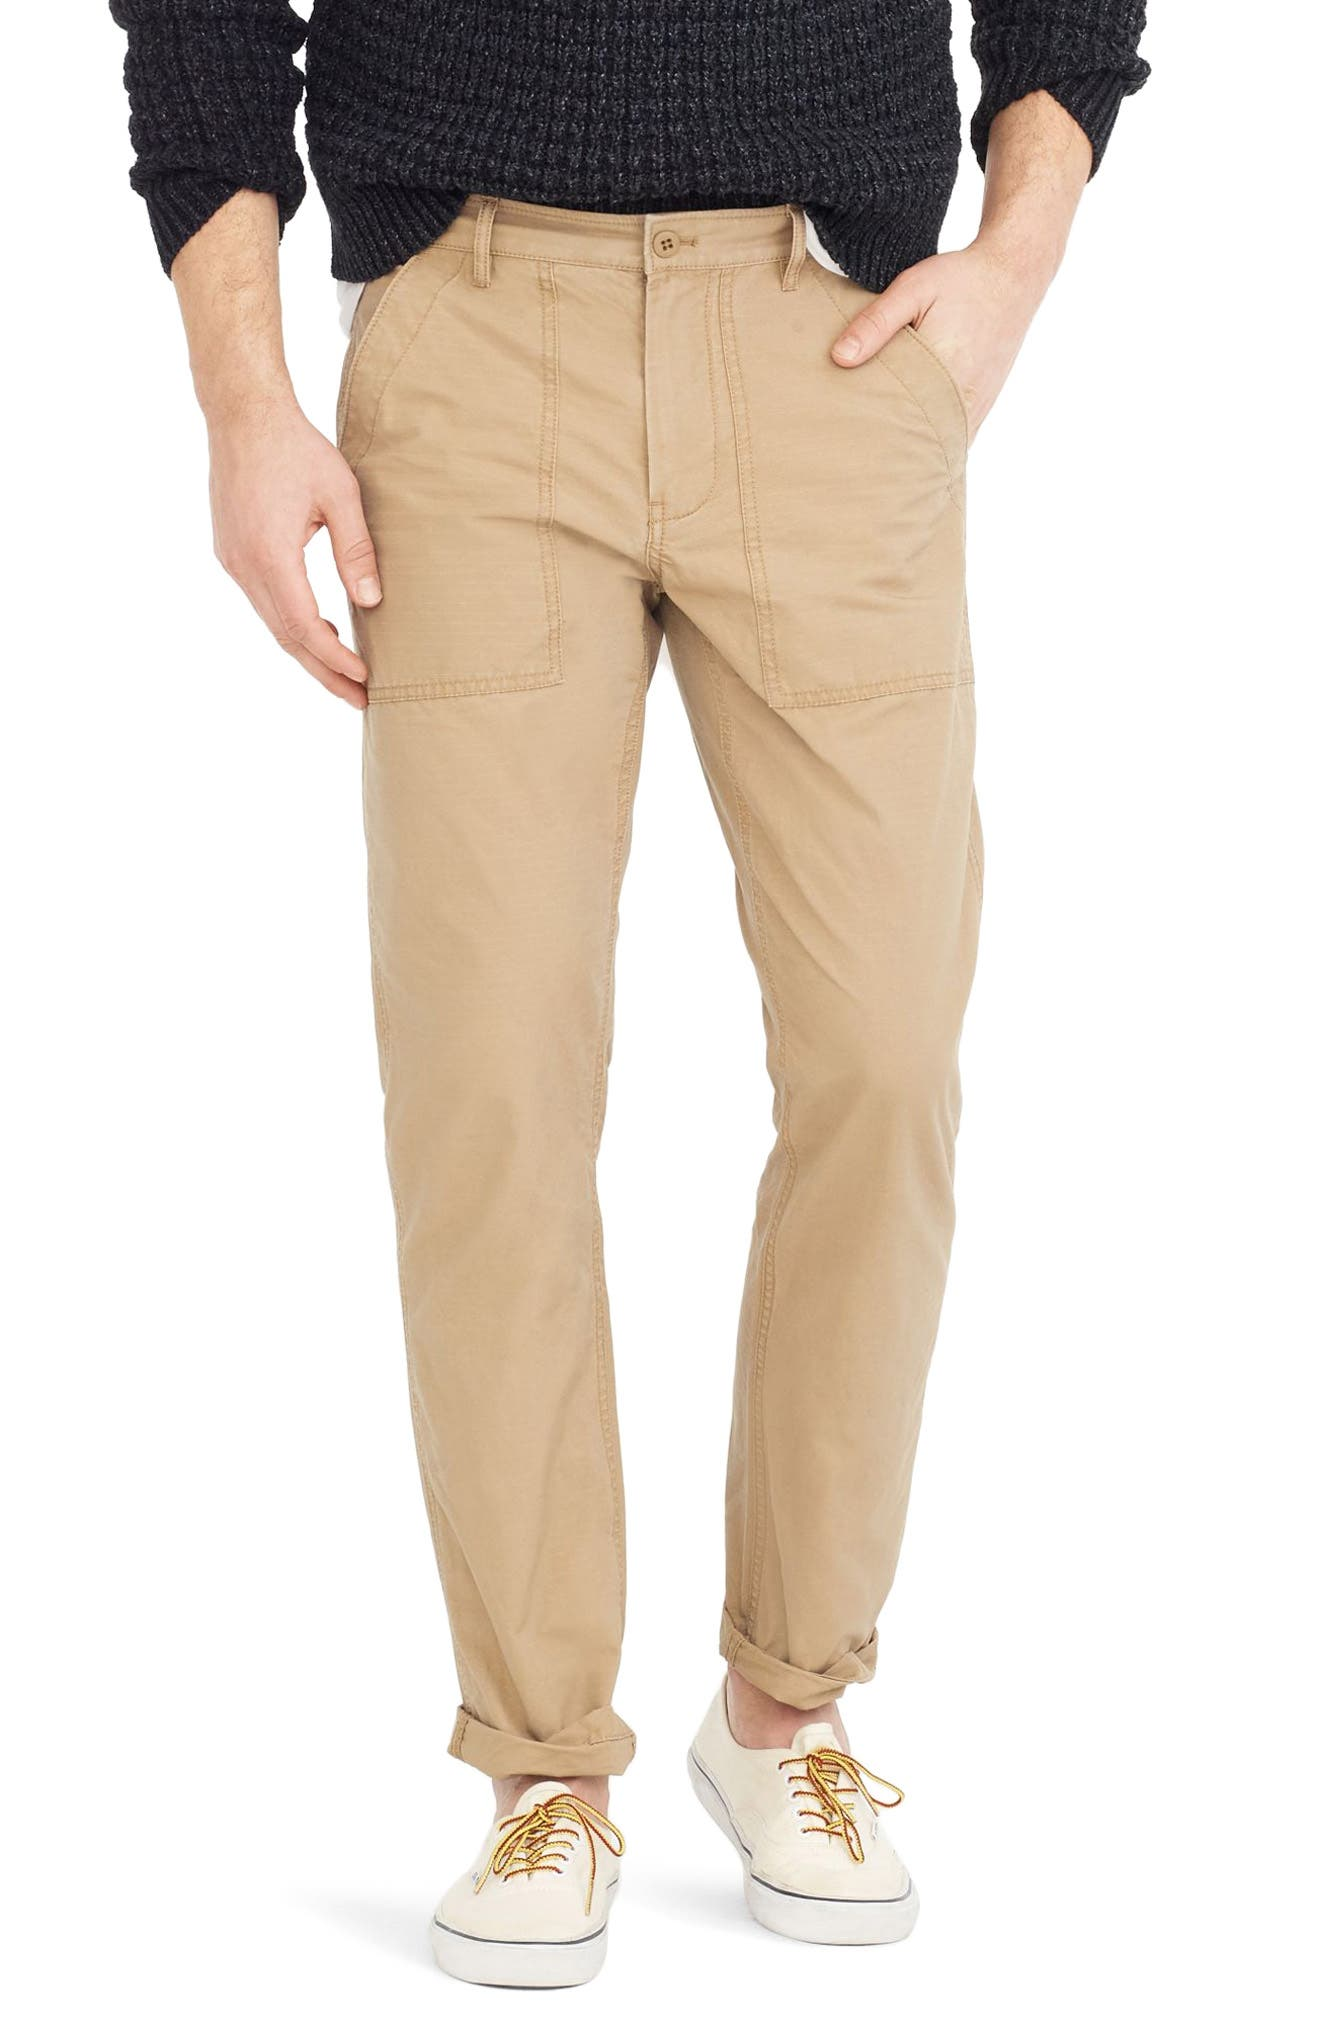 J.Crew 770 Straight Fit Ripstop Camp Pants